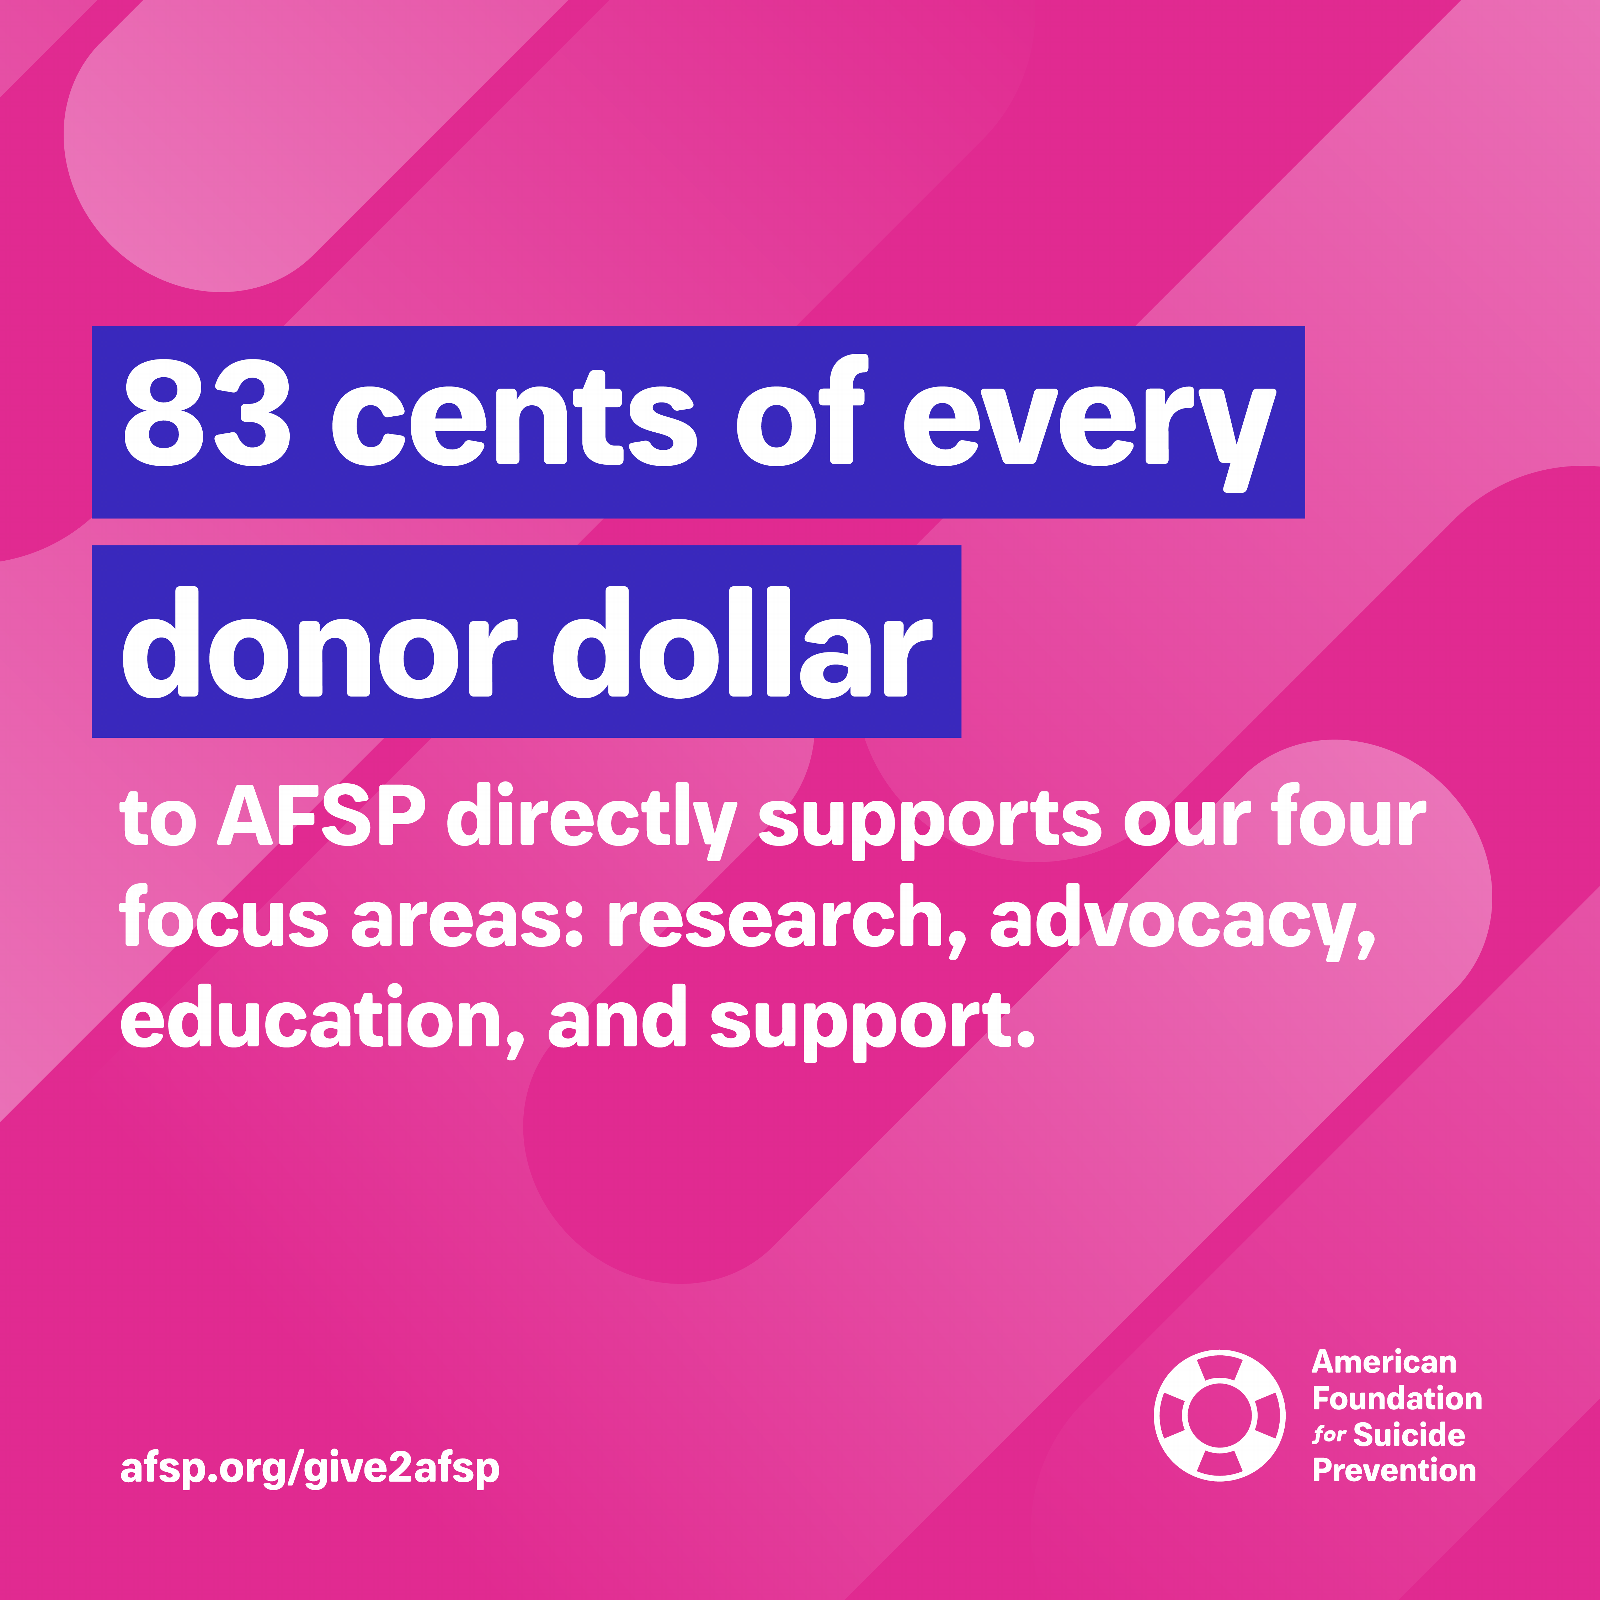 83 cents of every donor dollar to AFSP directly supports our four focus areas: research, advocacy, education, and support.